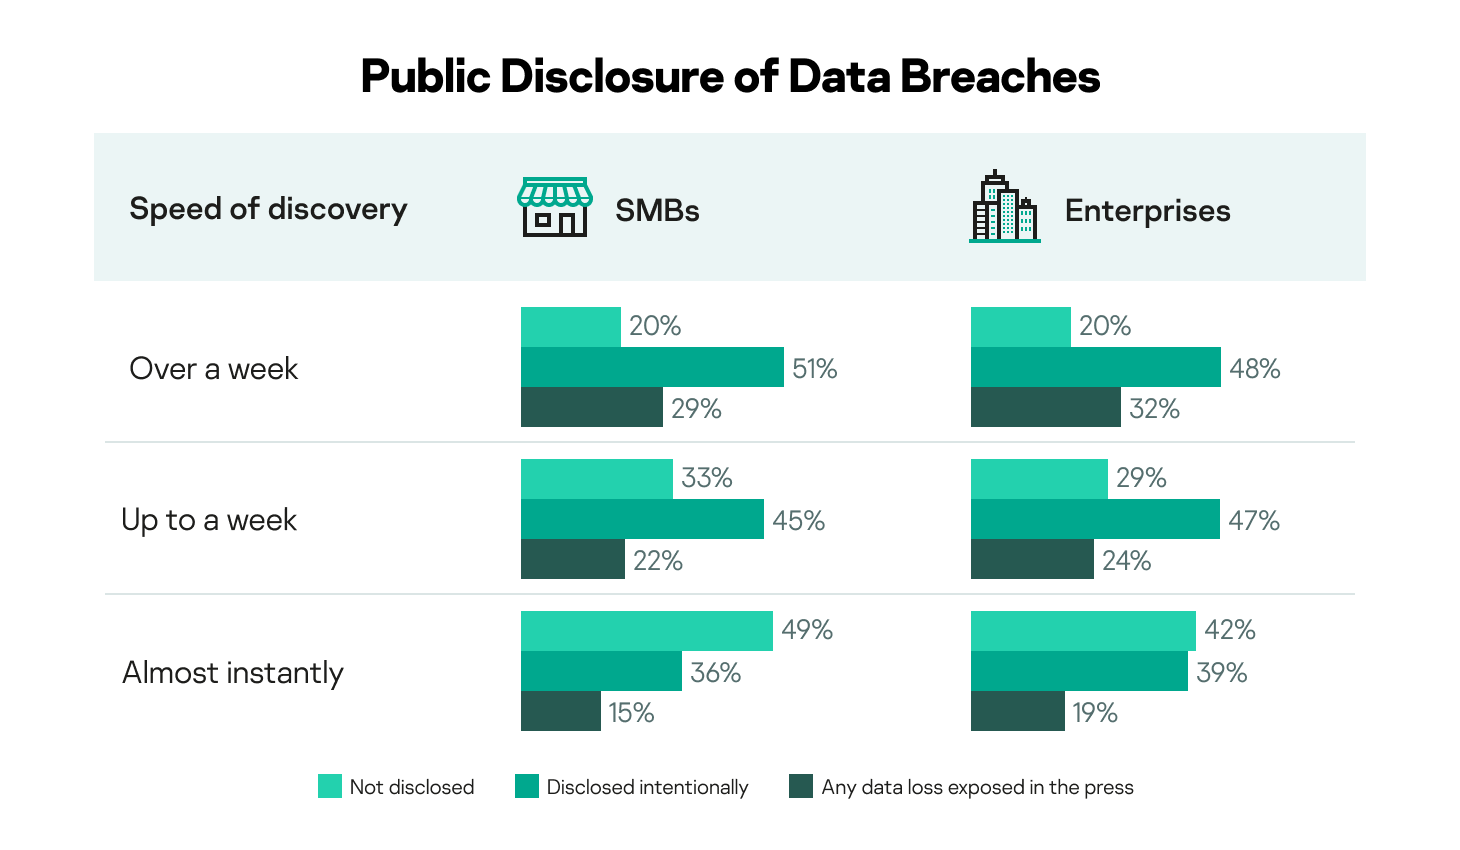 When data breaches were discovered and disclosed amongst SMBs and enterprises